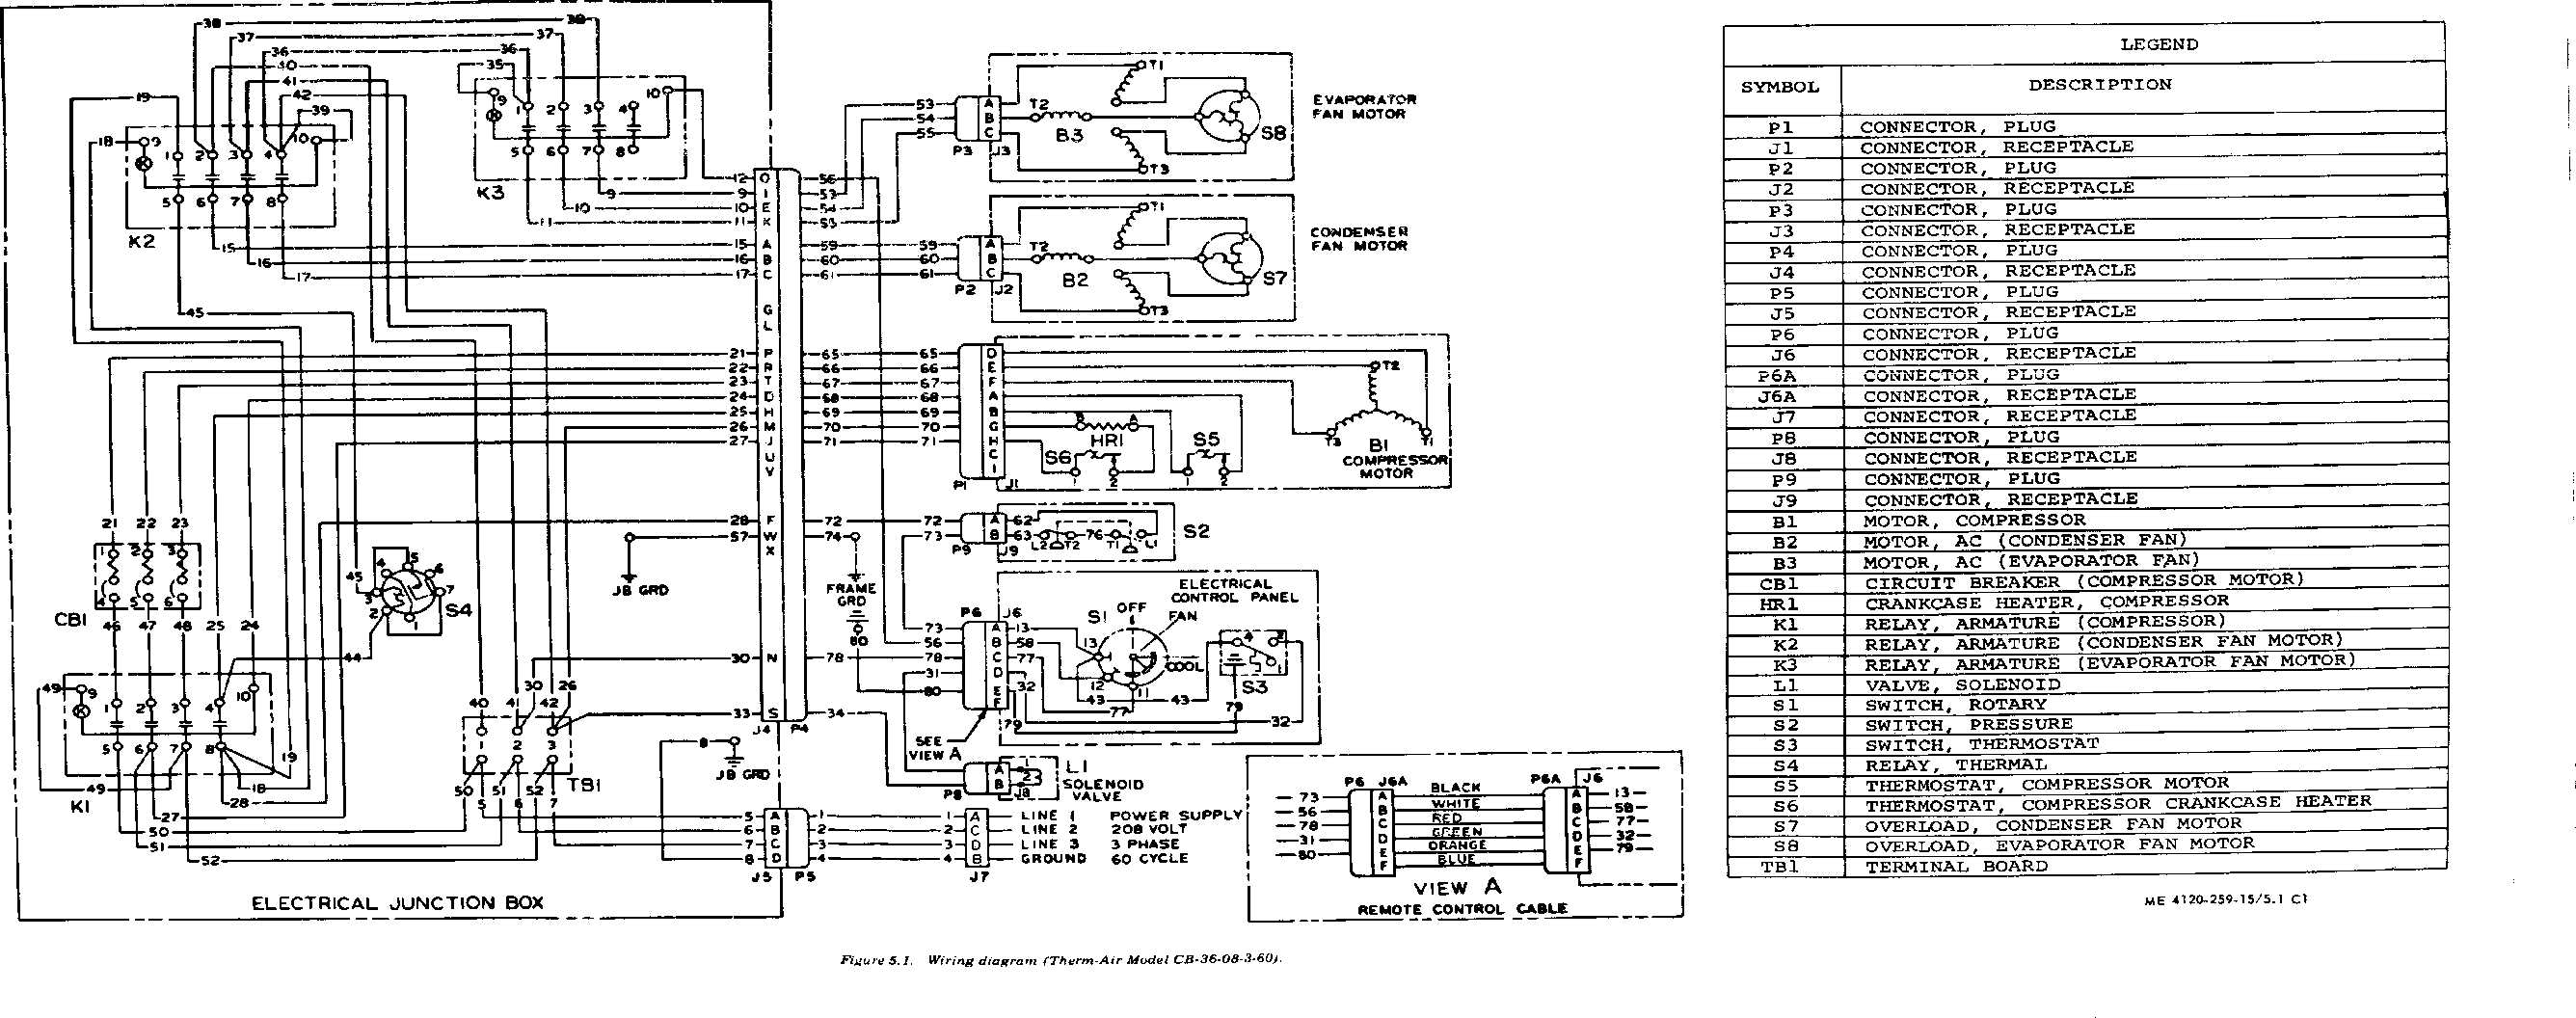 Fantastic E2eb 012ha Wiring Diagram Photo - Everything You Need to ...